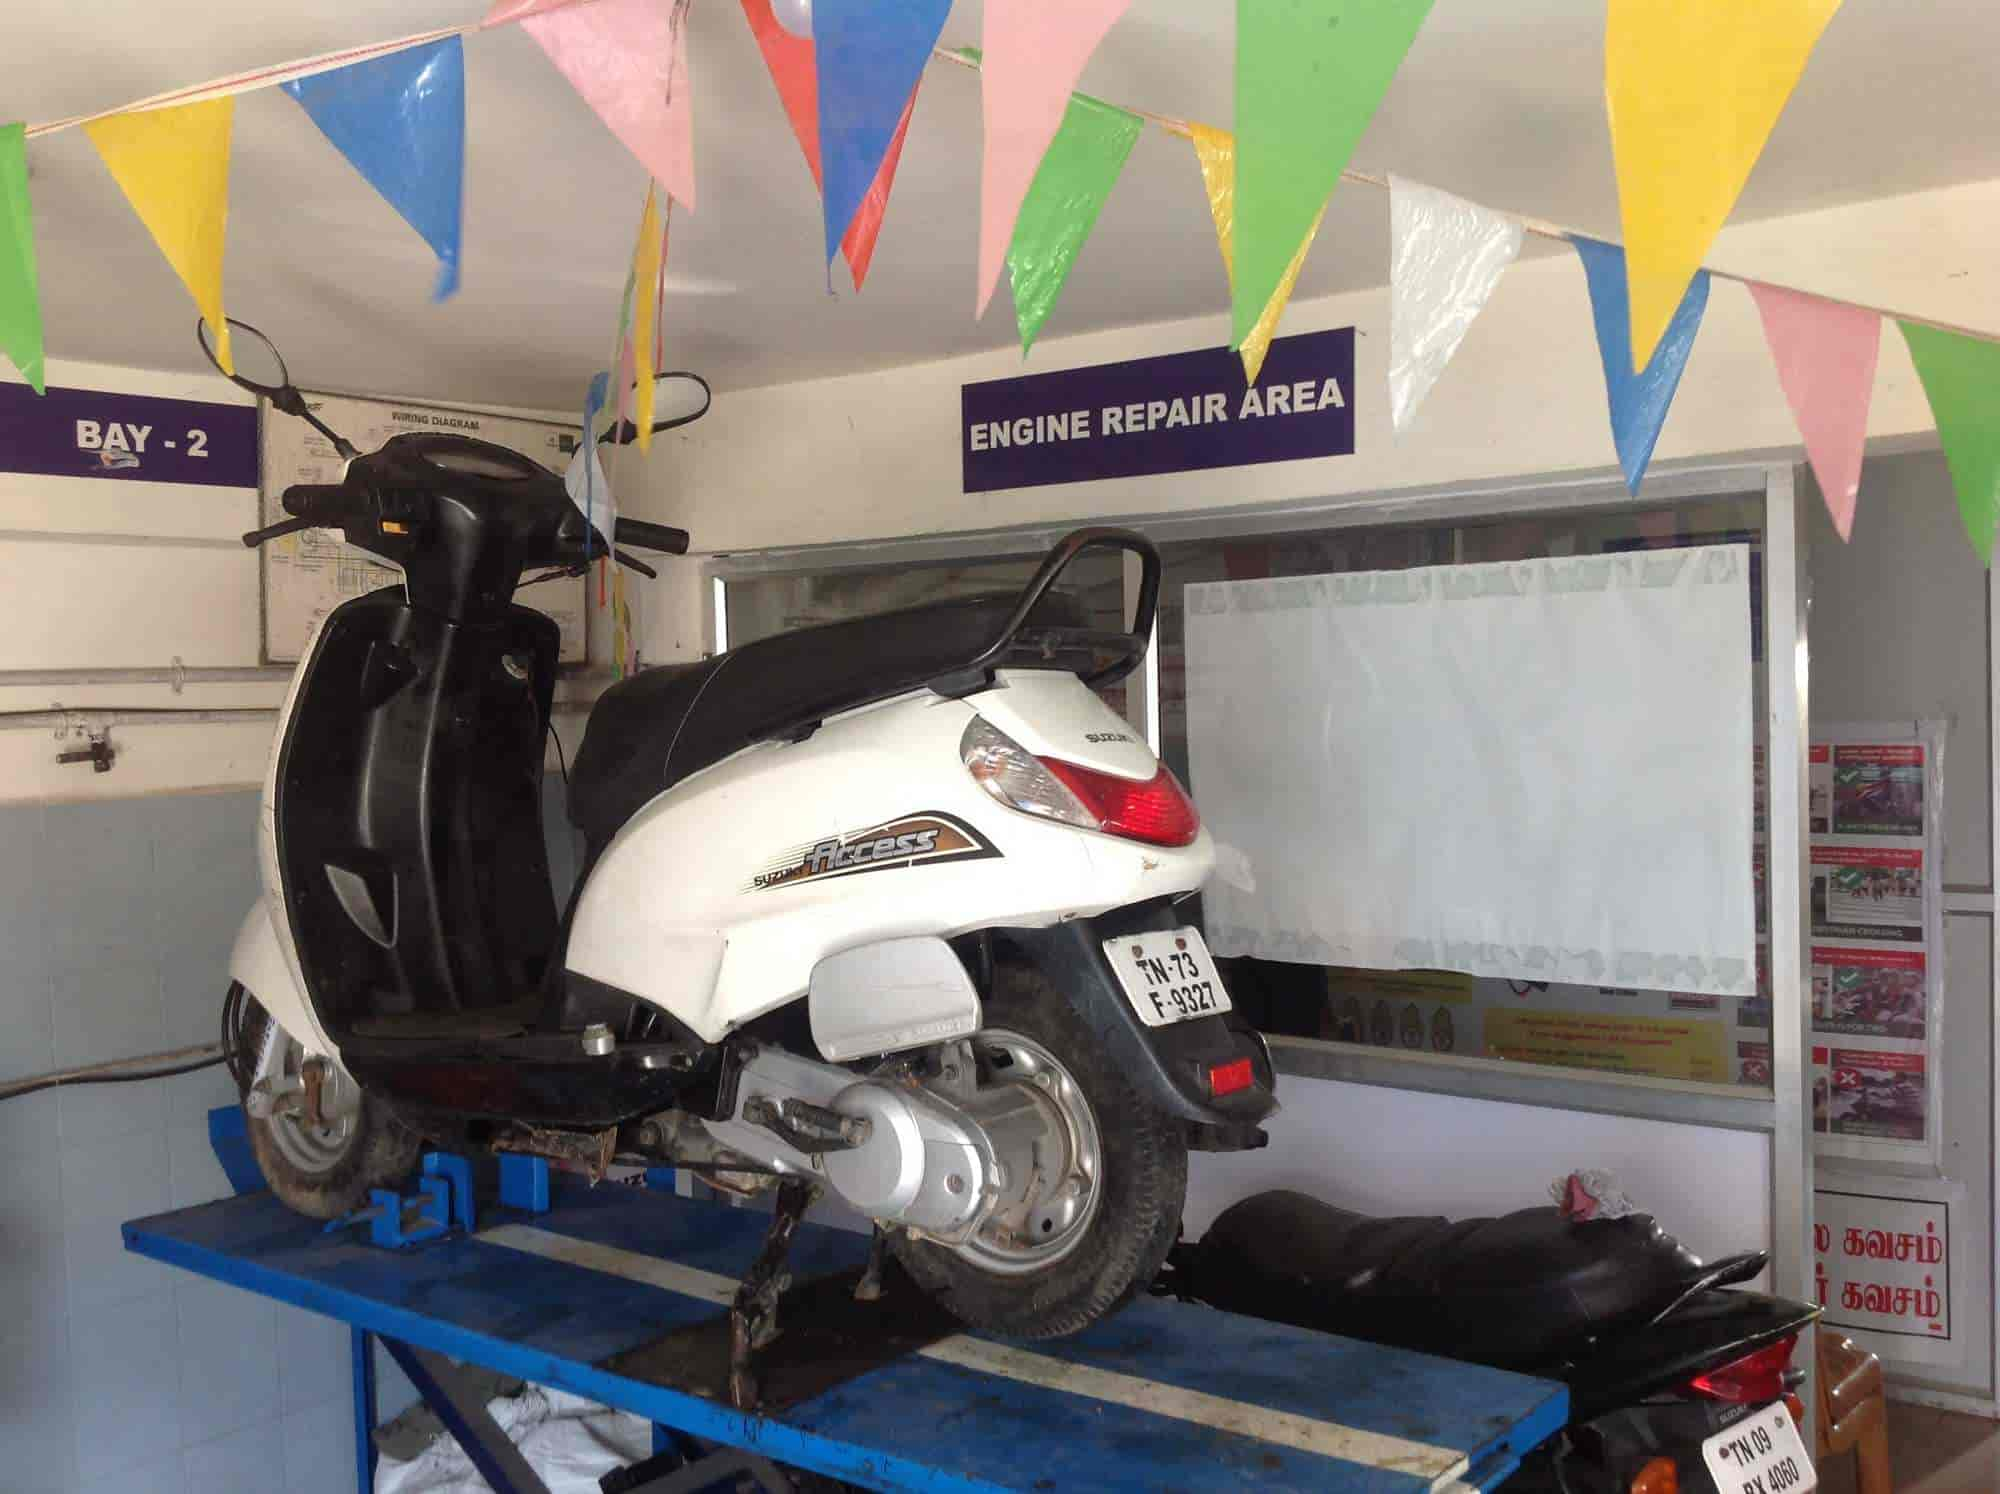 Sri Om Sakthi Two Wheelers Walajapet Motorcycle Dealers In 370 X Scooter Wiring Diagram Vellore Justdial